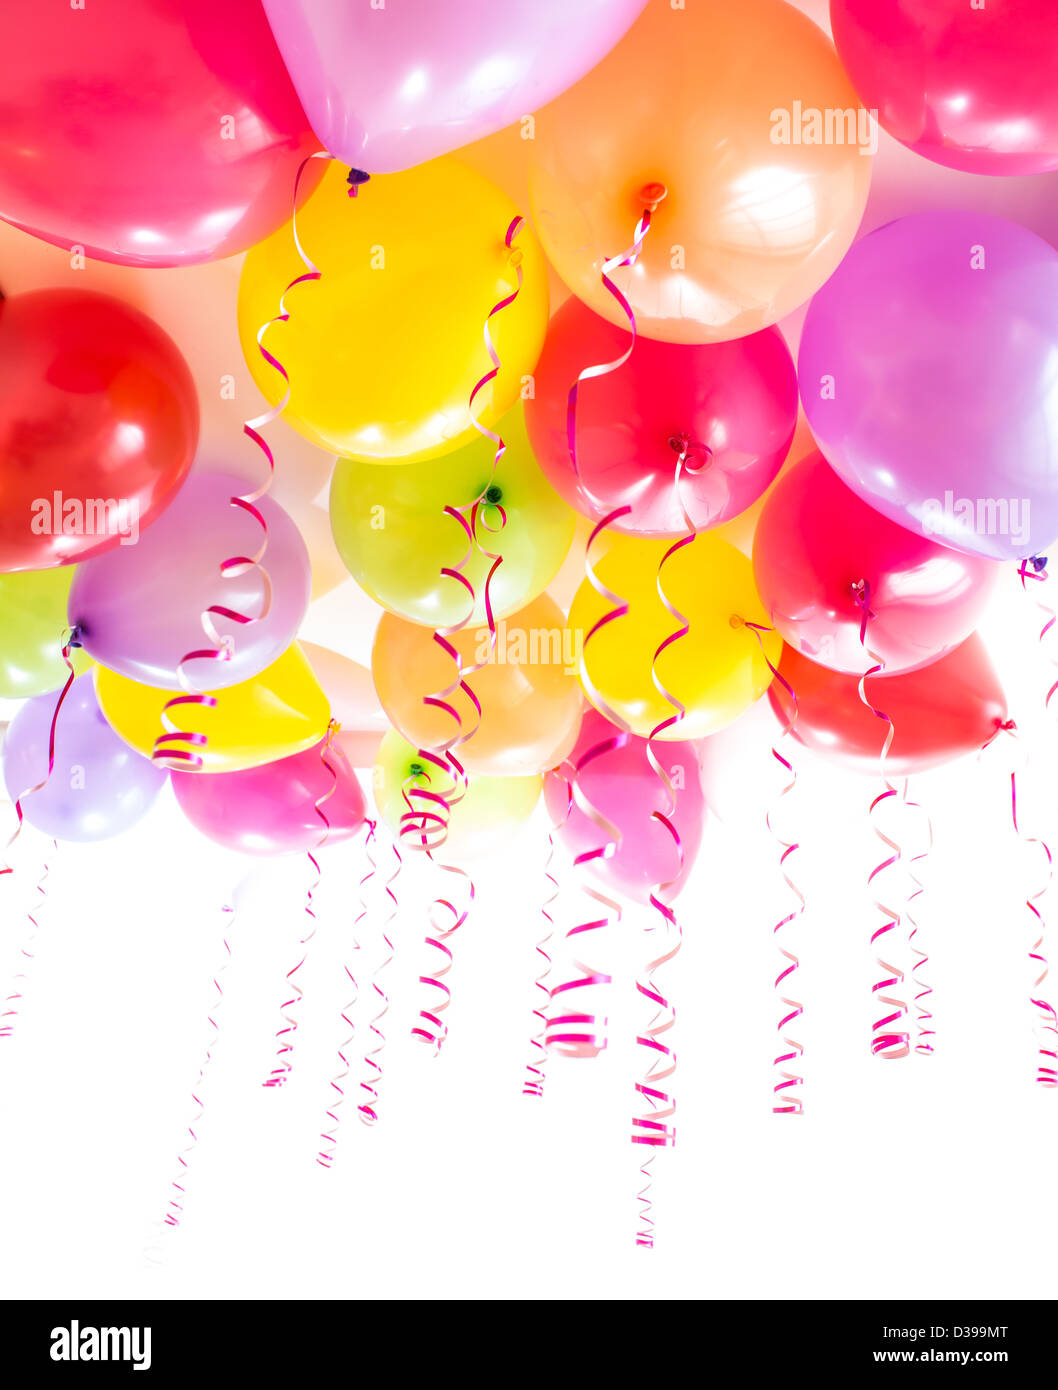 balloons with streamers for birthday party celebration isolated on white - Stock Image